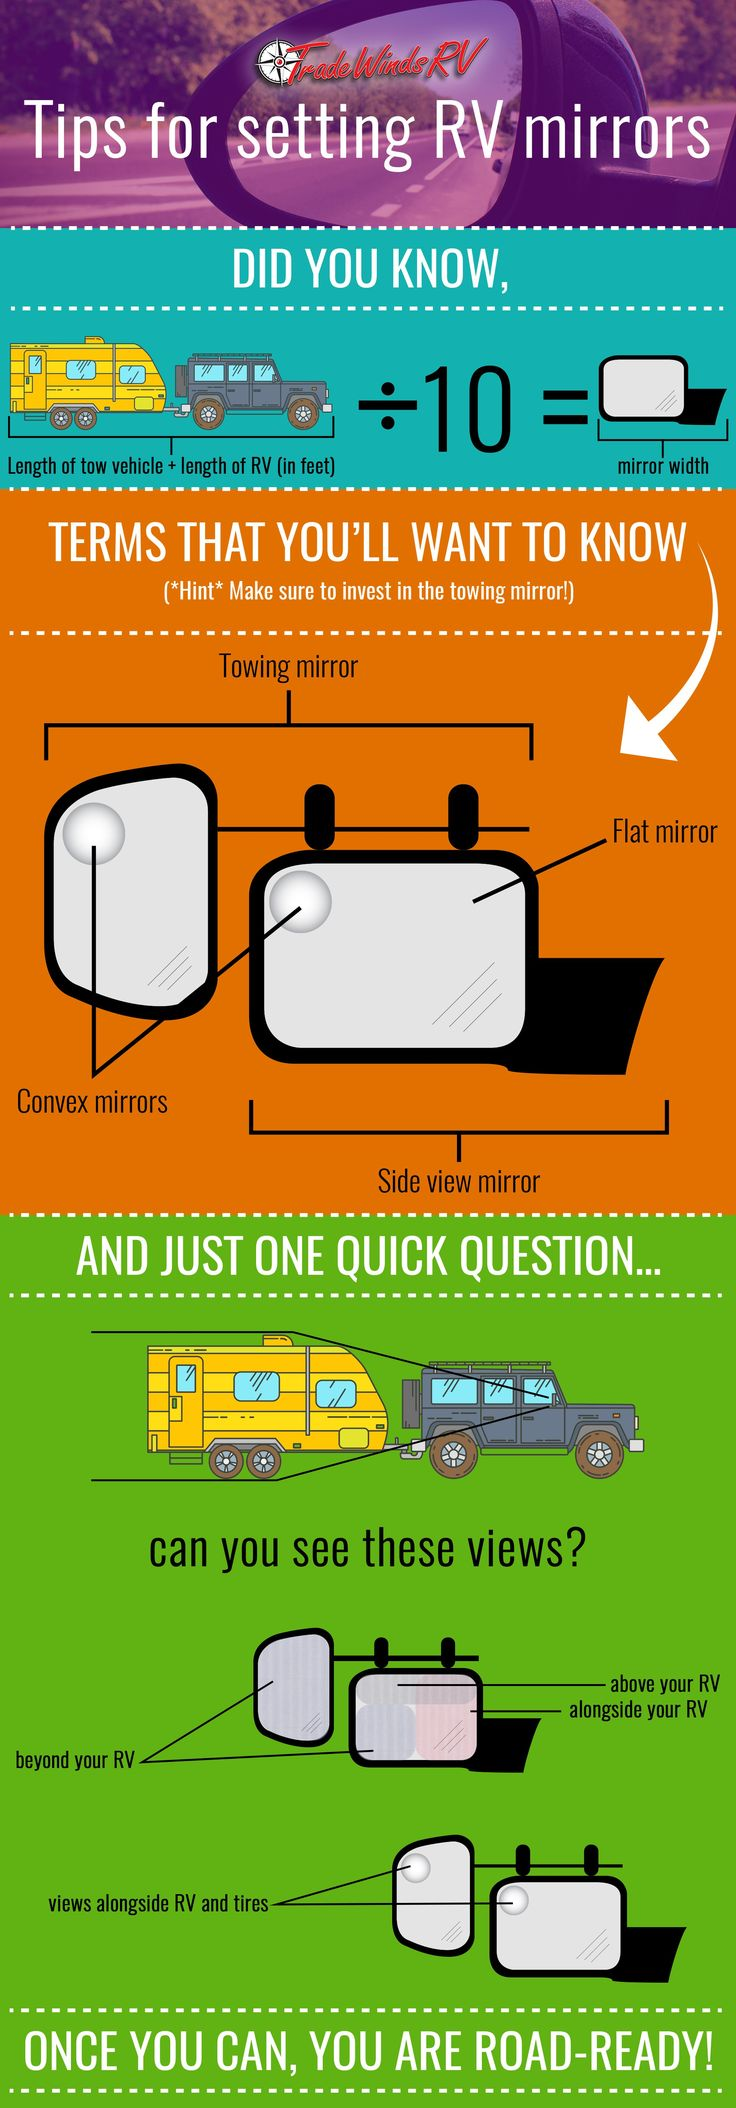 75 Best Go Rving Images On Pinterest Campers Camping Ideas And Trailer Light Wiring Harness 4 Flat 35ft To Redo Lights Tradewinds Tips For Setting Your Rv Mirrors